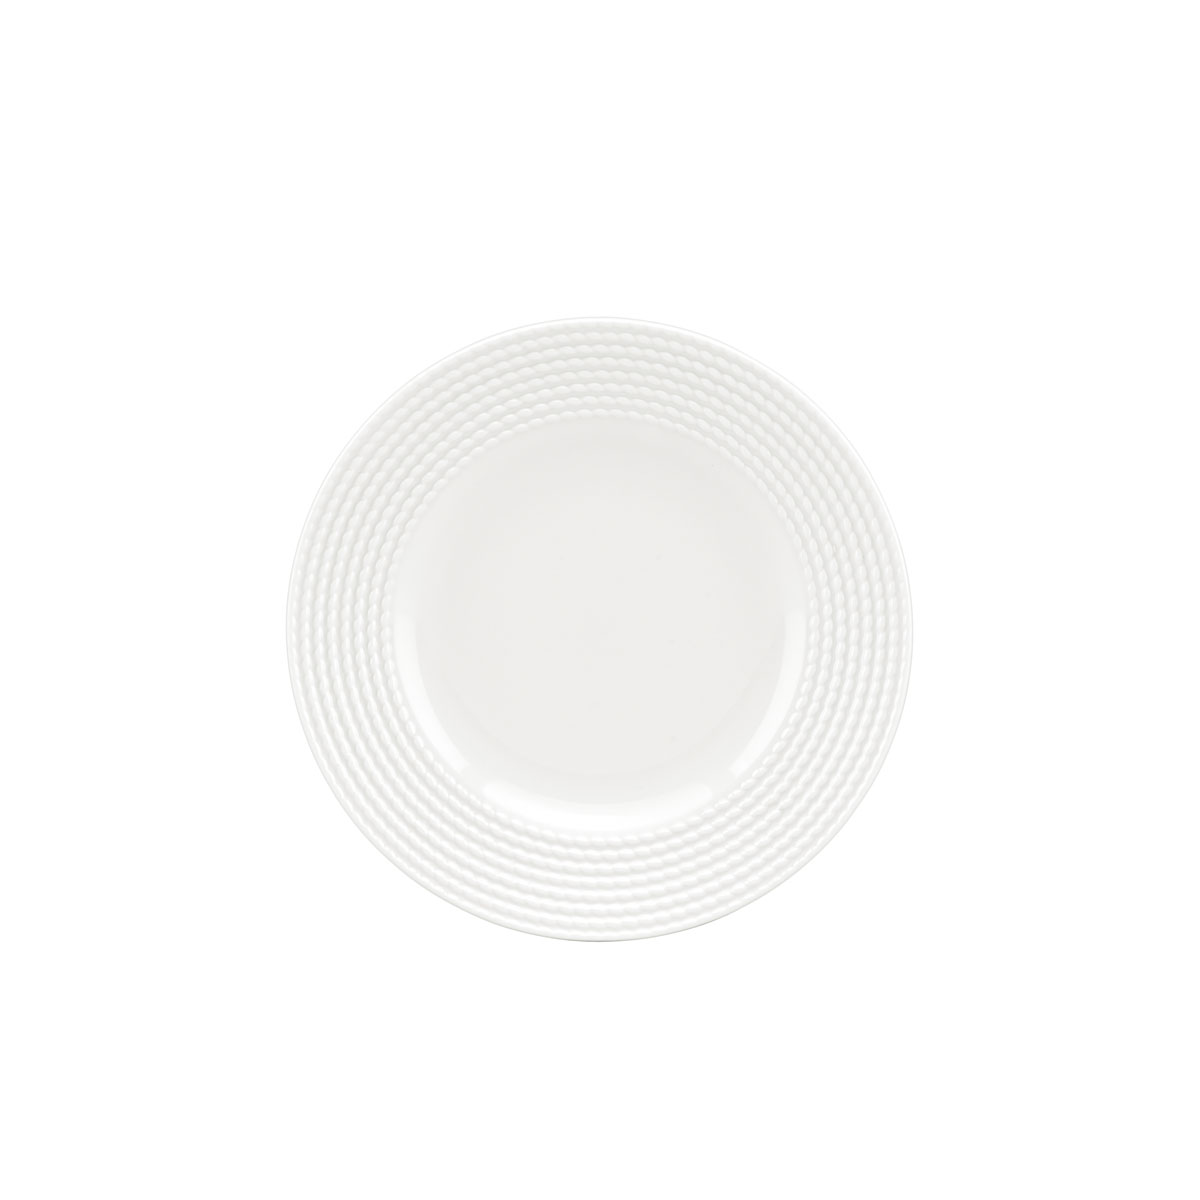 Kate Spade China by Lenox, Wickford Accent Plate 9